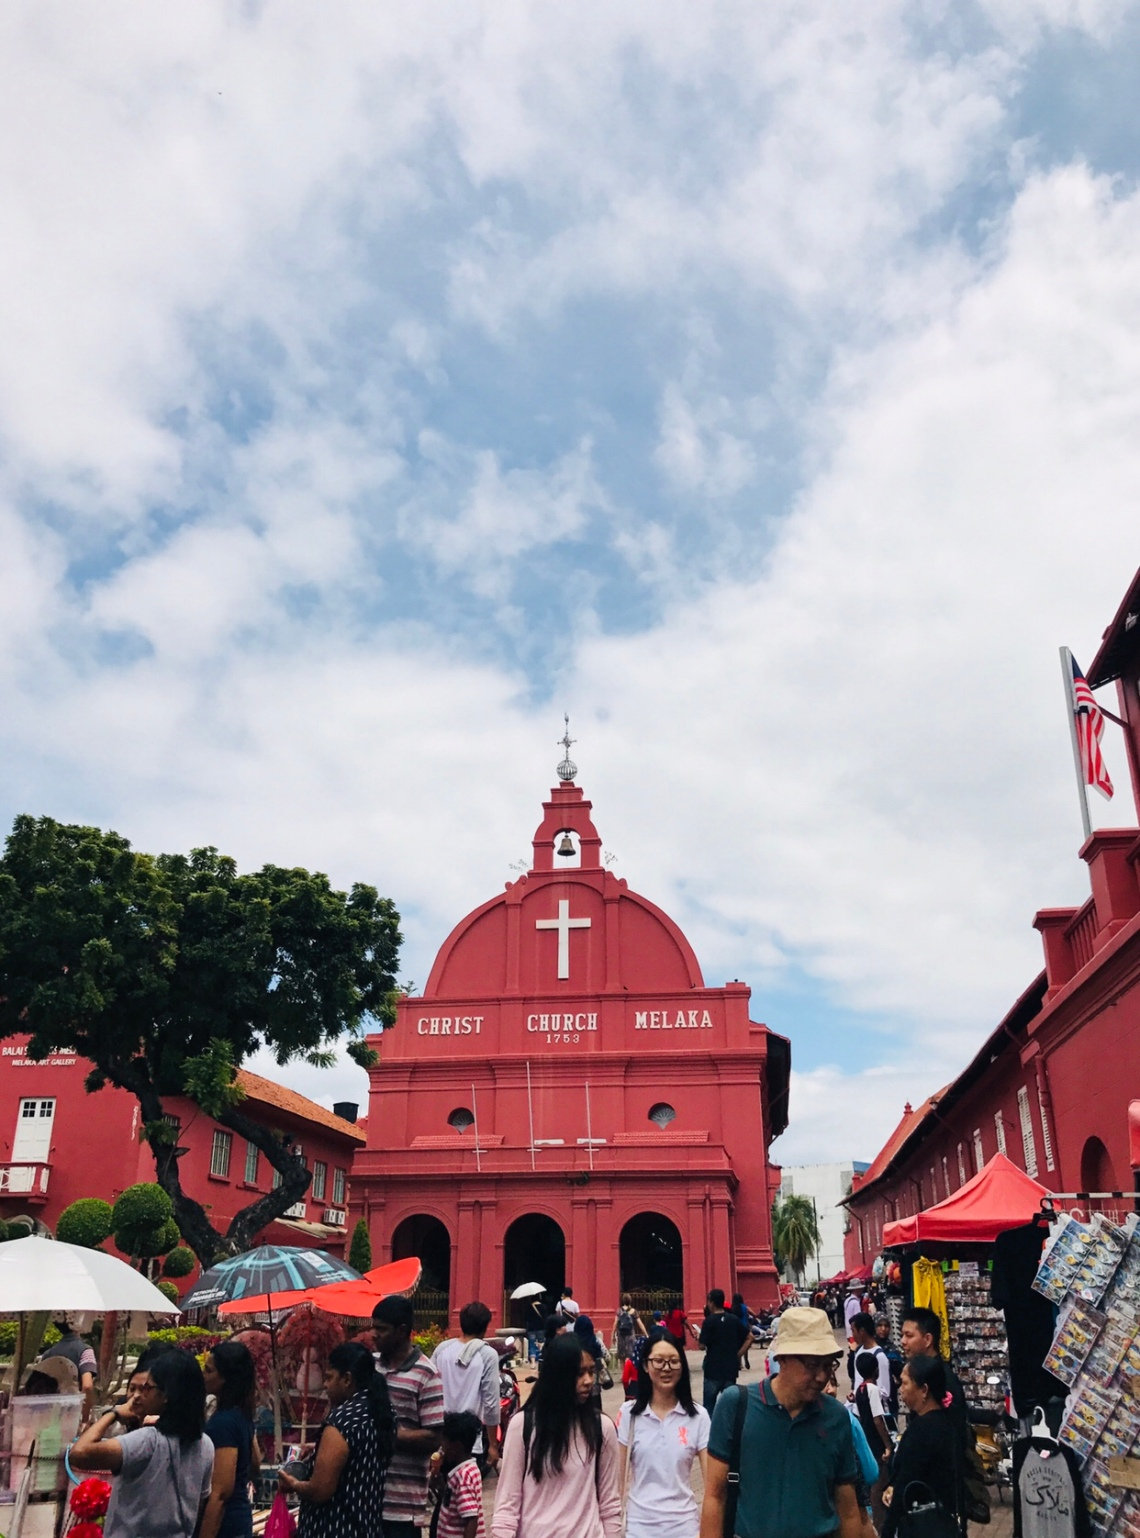 The Christ Church, Melaka